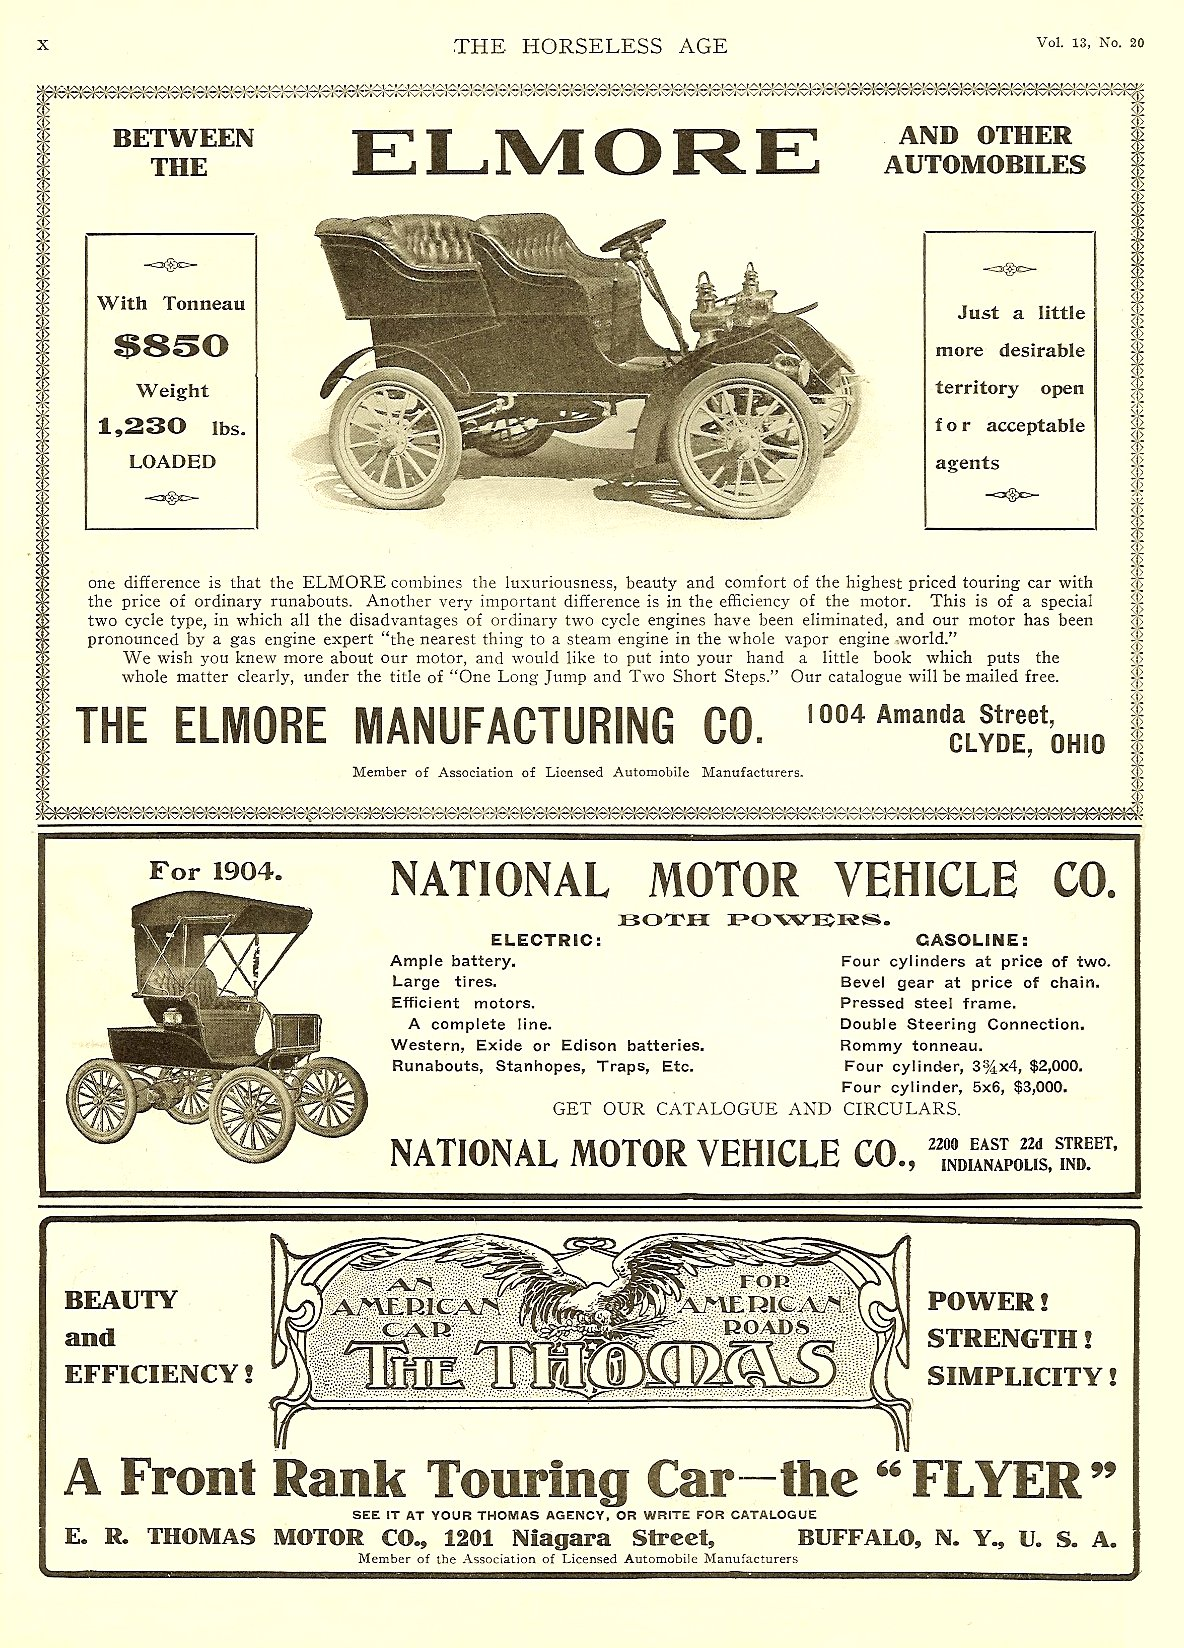 1904 5 18 National Motor Vehicle Co BOTH POWERS Electric Gasoline THE HORSELESS AGE May 18, 1904 Vol. 13 No. 20 9″x12″ page X